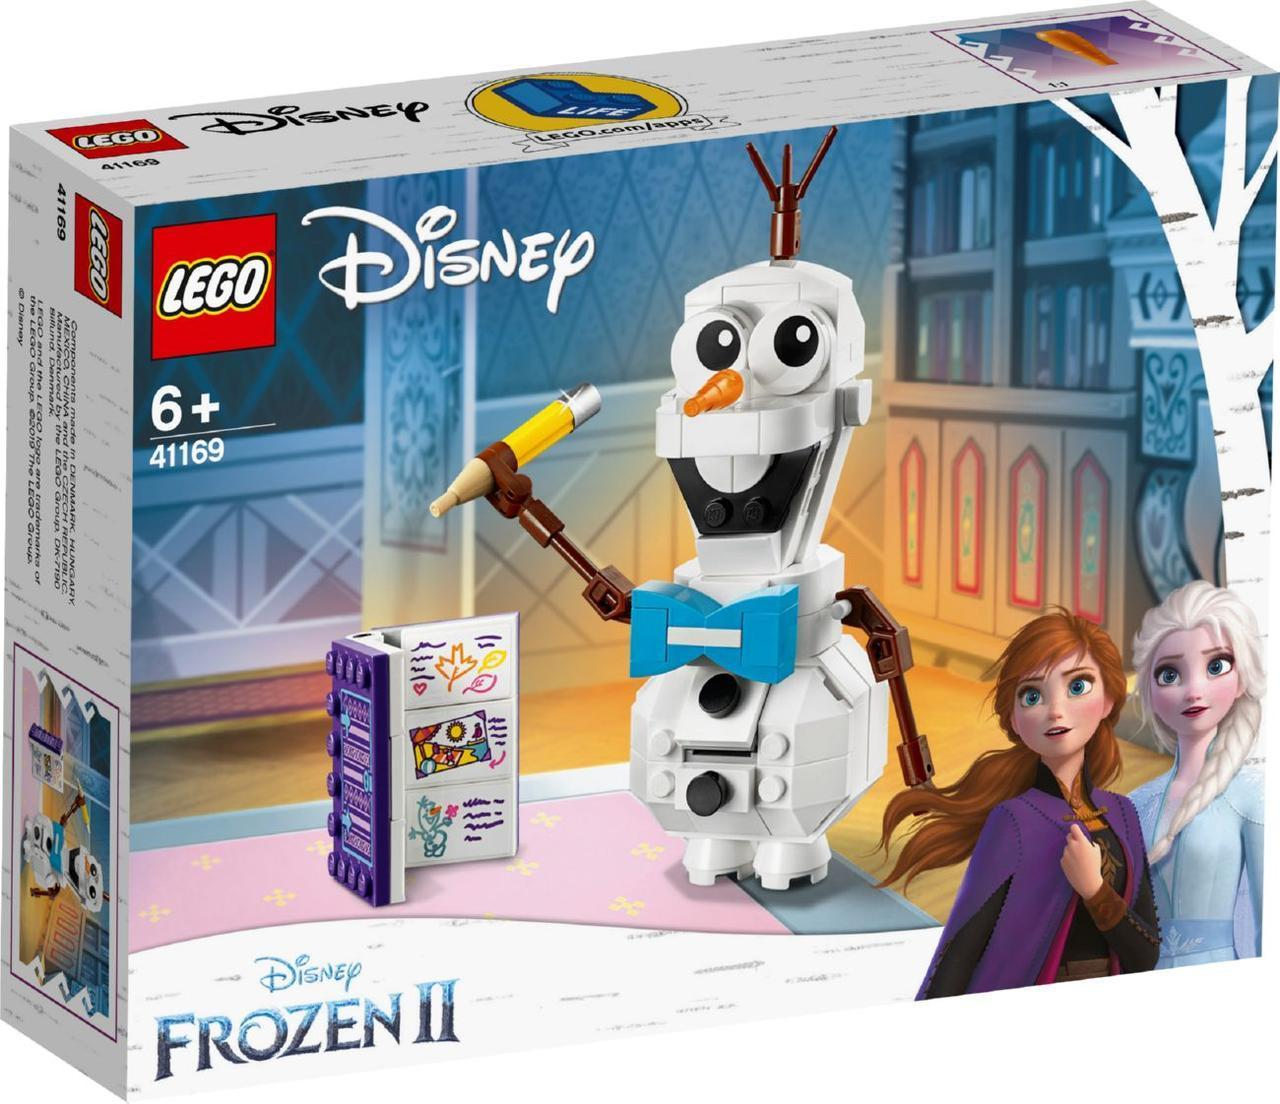 Lego Disney Princesses Олаф 41169